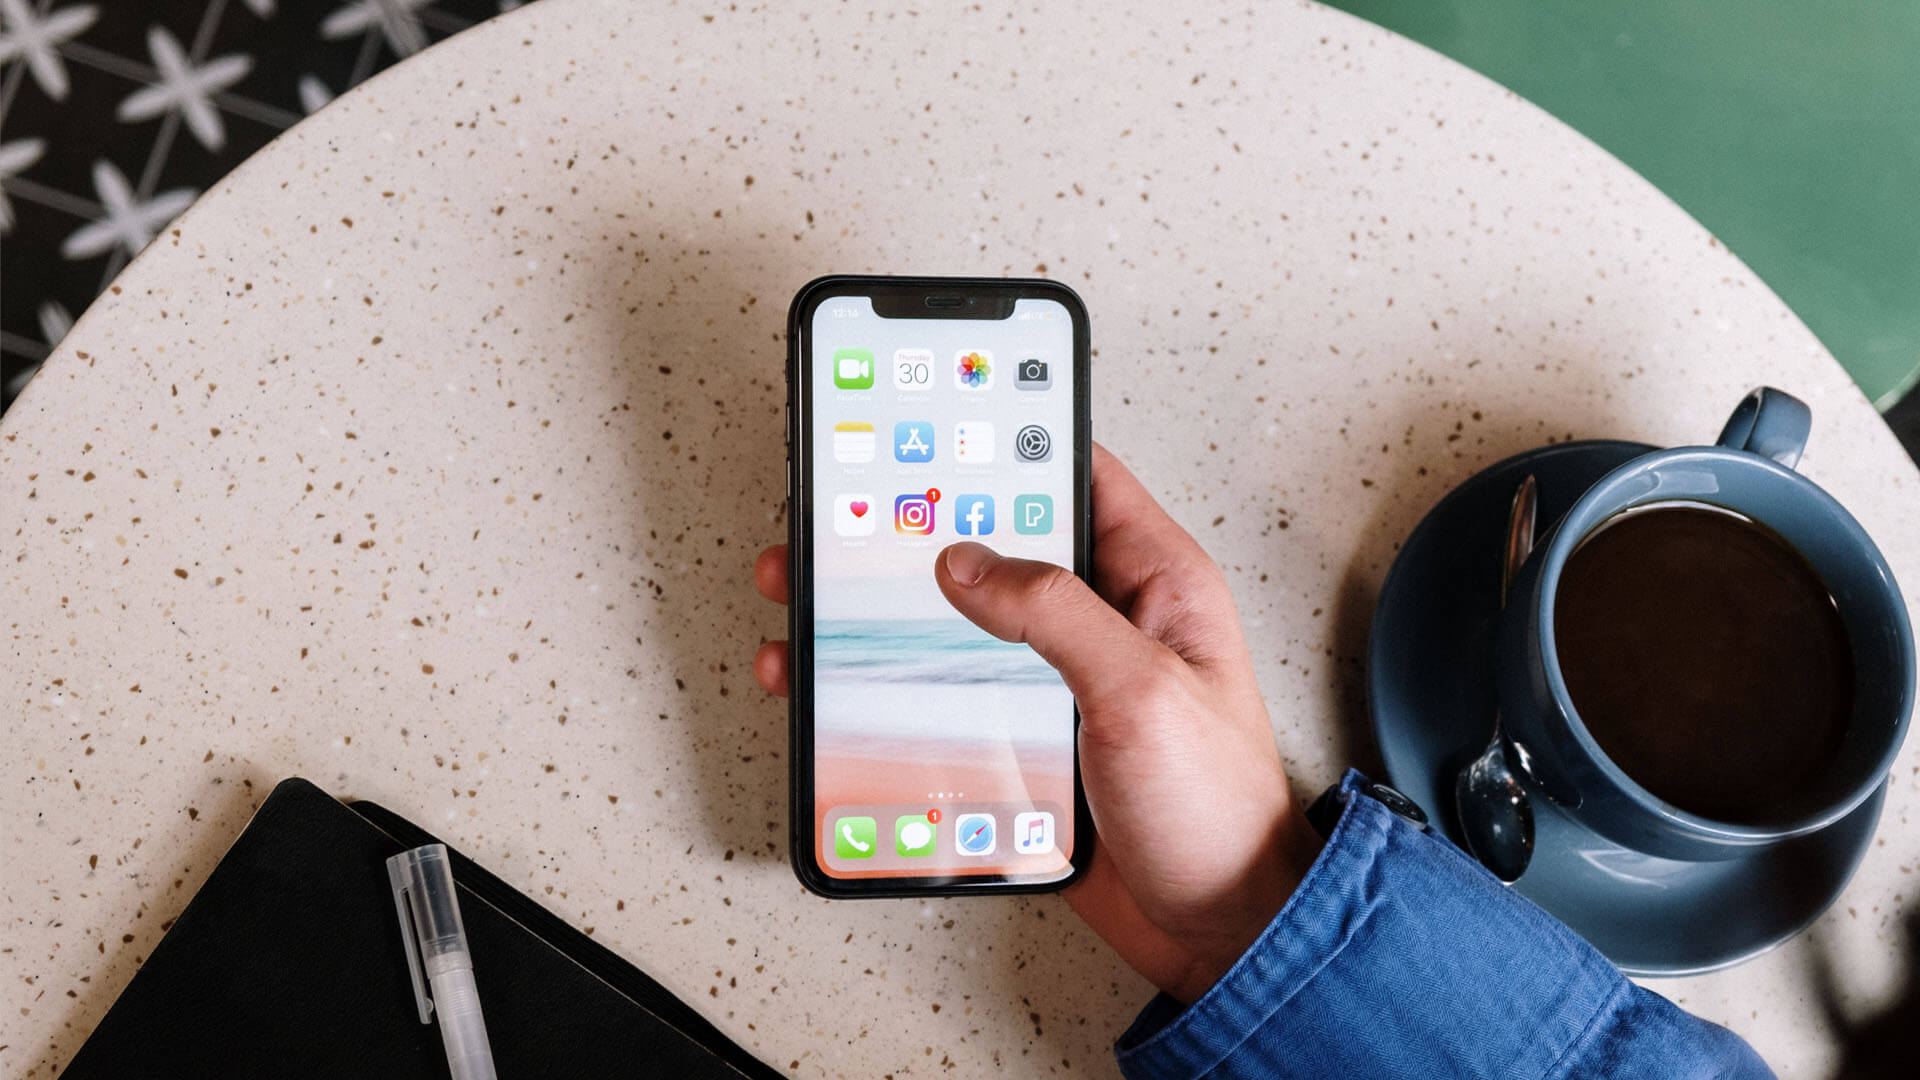 An image of a person on a smart phone going to social media that is the primary featured photo for the article Trademark Protection & Social Media: 3 Important Considerations for business owners.